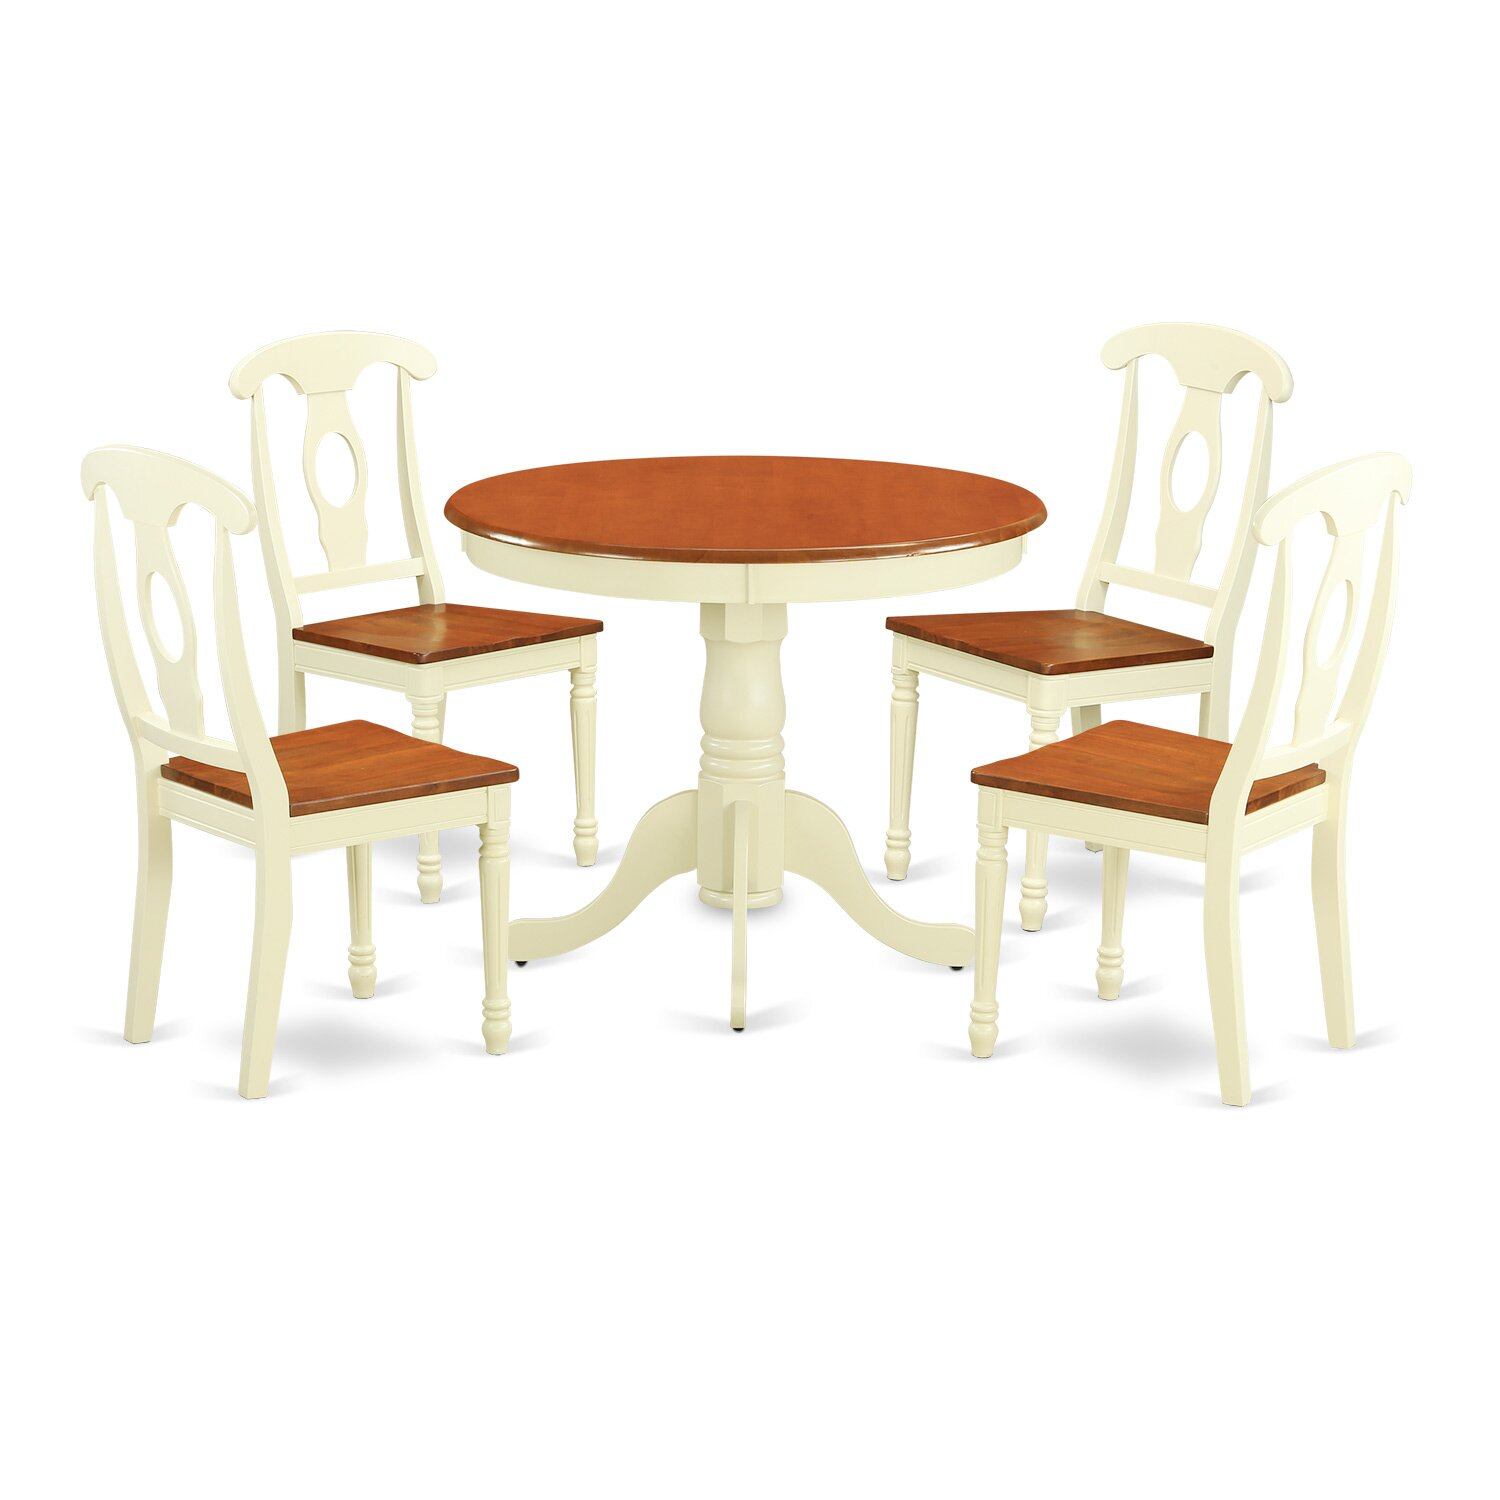 East west 5 piece dining set wayfair for 5 piece dining set